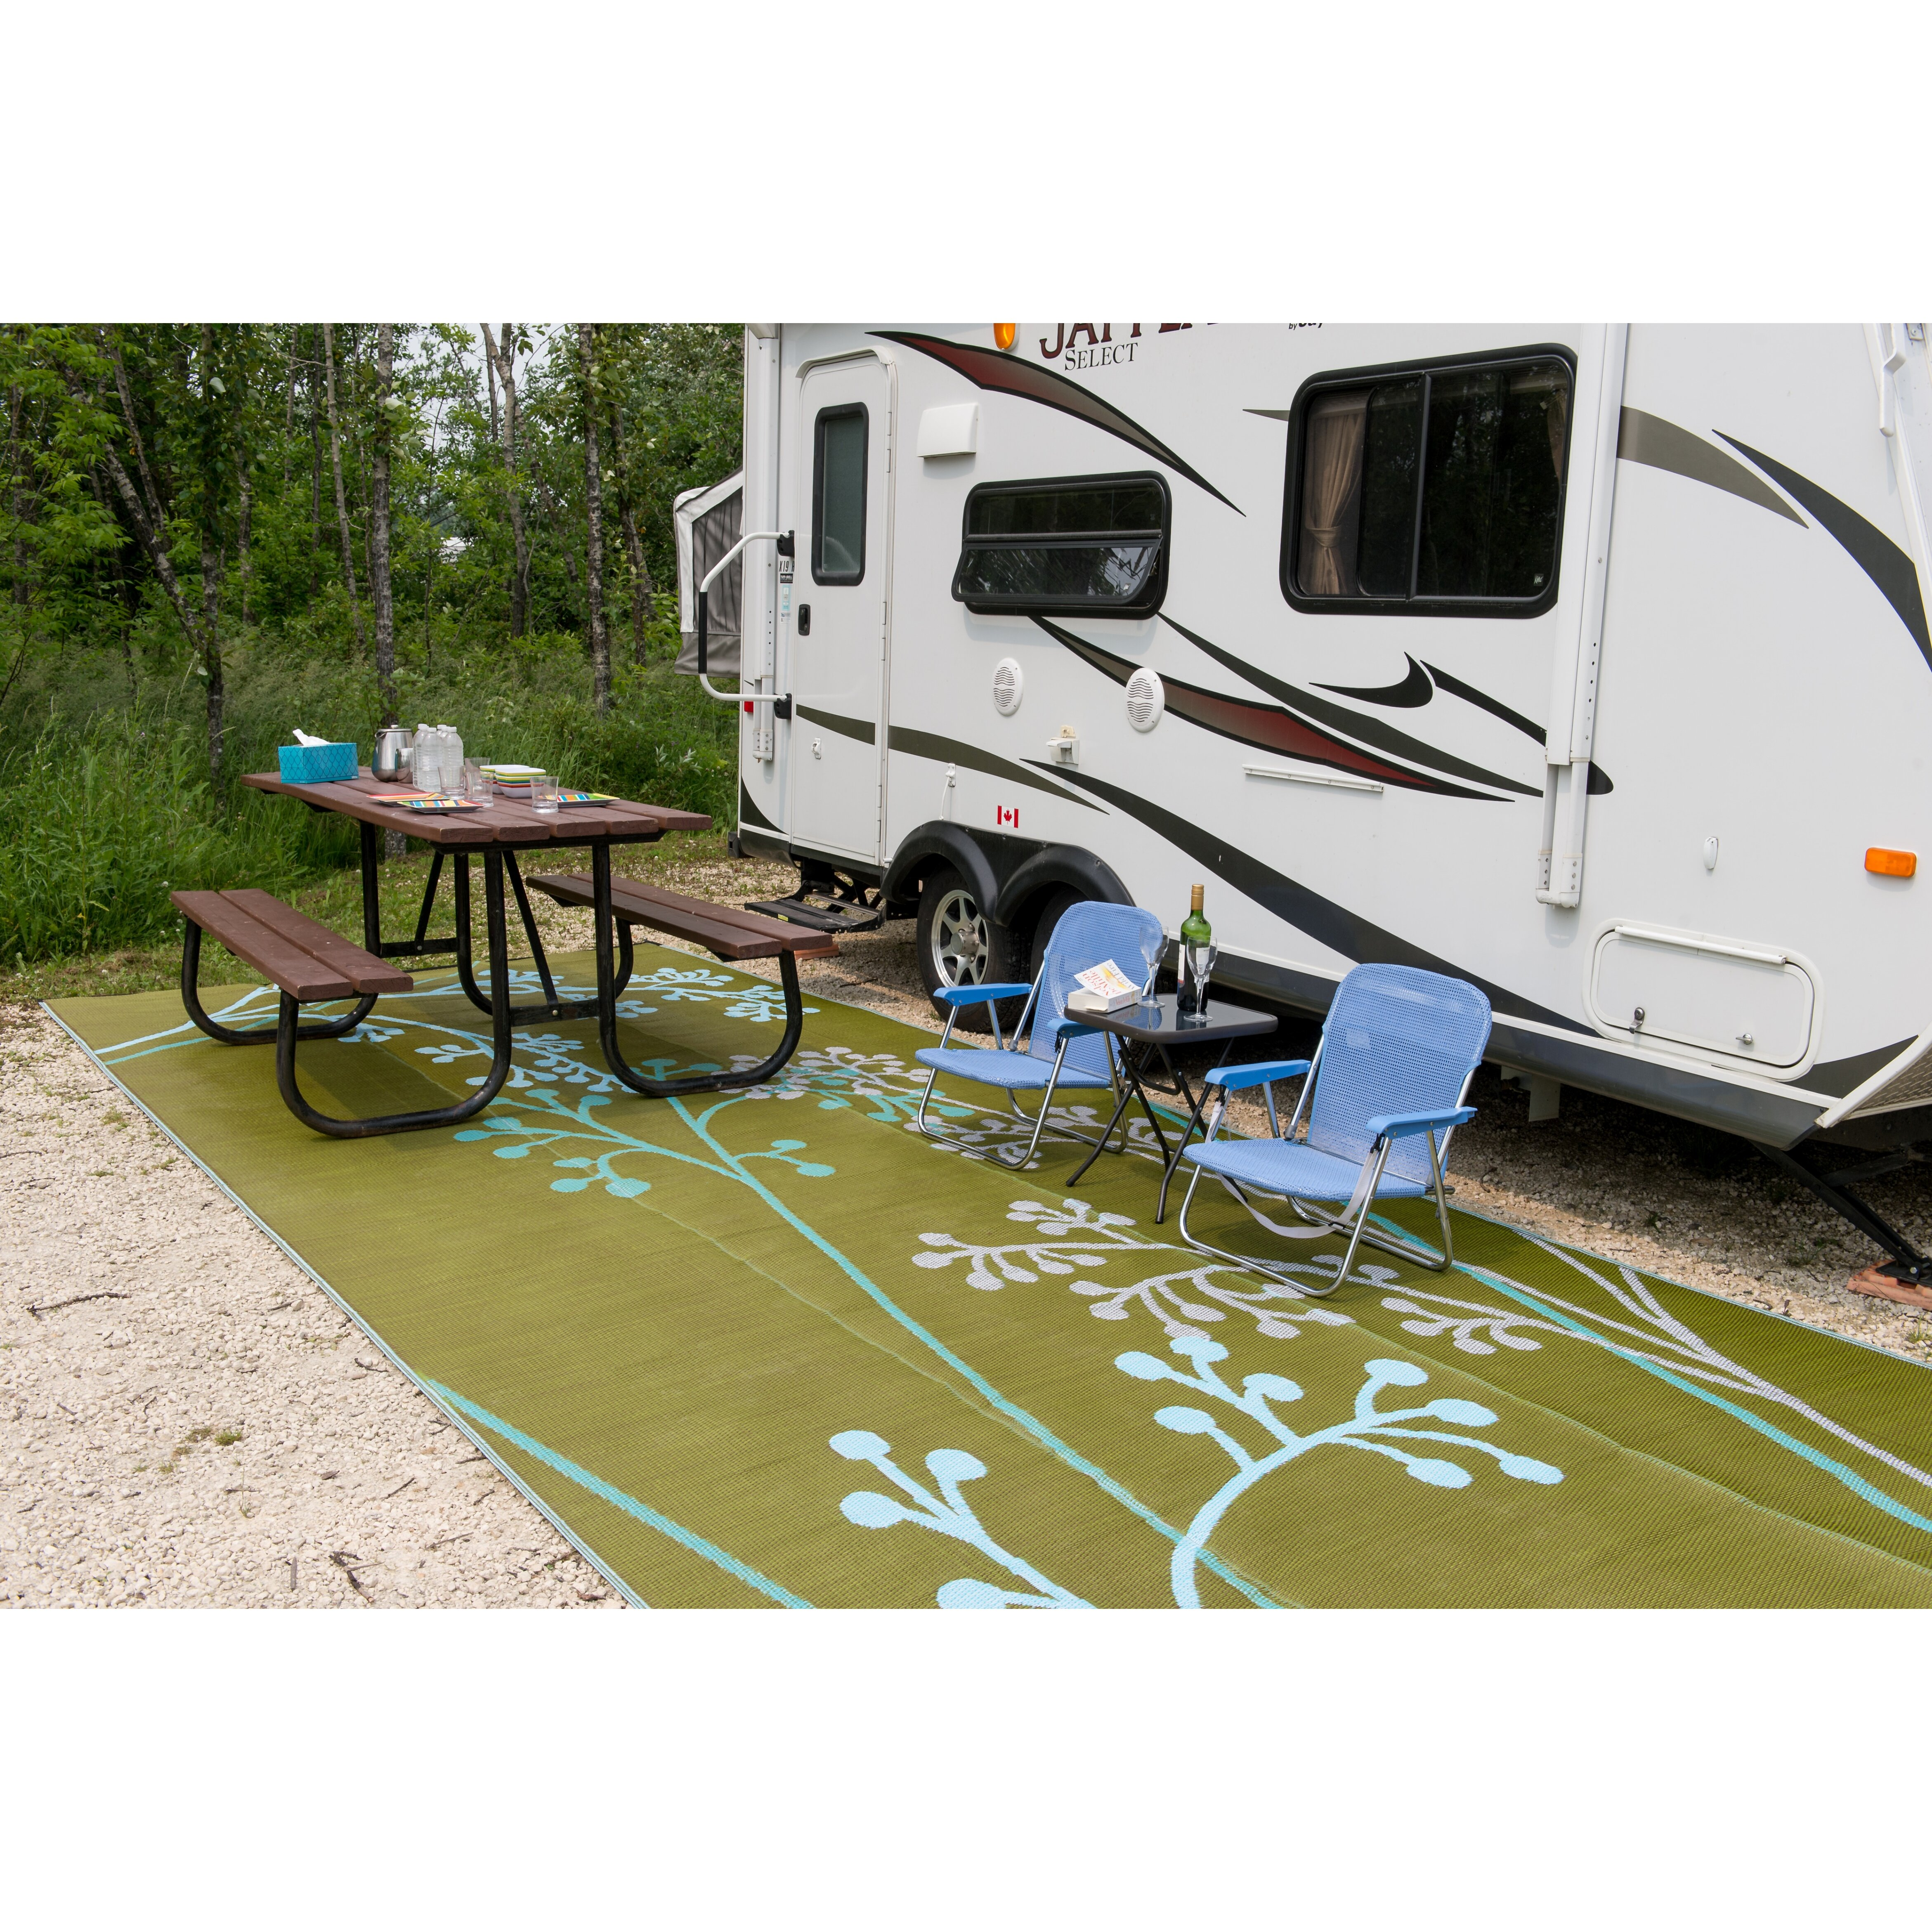 road fold florida turf e awning uv dometic edition mat outdoor patio mats your texas fit anchors buy prest oregon motorhome x of decorative rv for c carefree picnic trailer and a special south awningsandaccessories colorado stakes dakota beach accessories awnings o rug travel